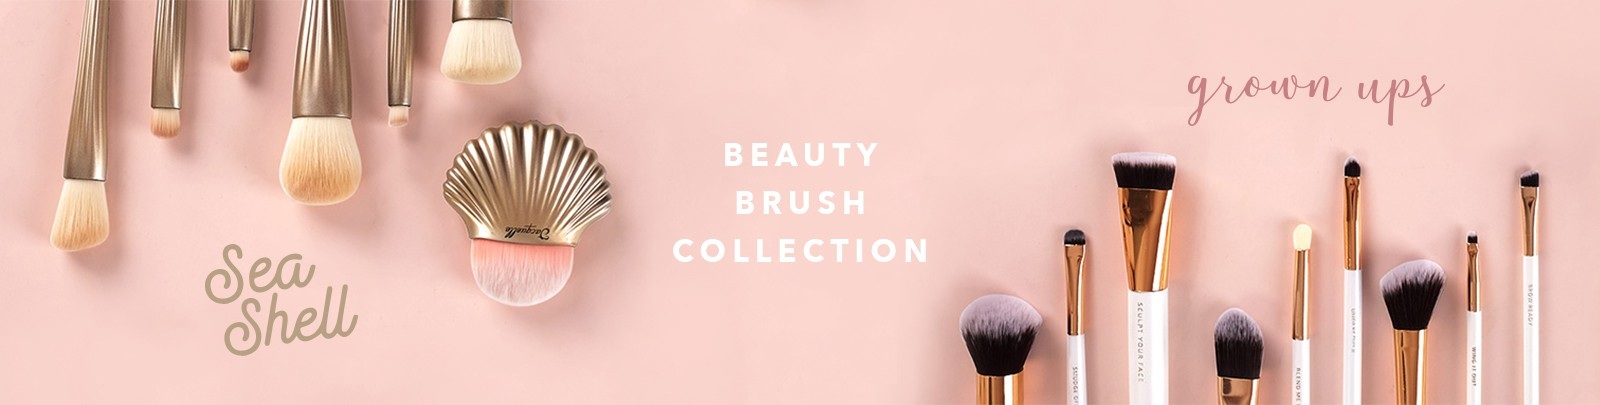 Beauty Brush